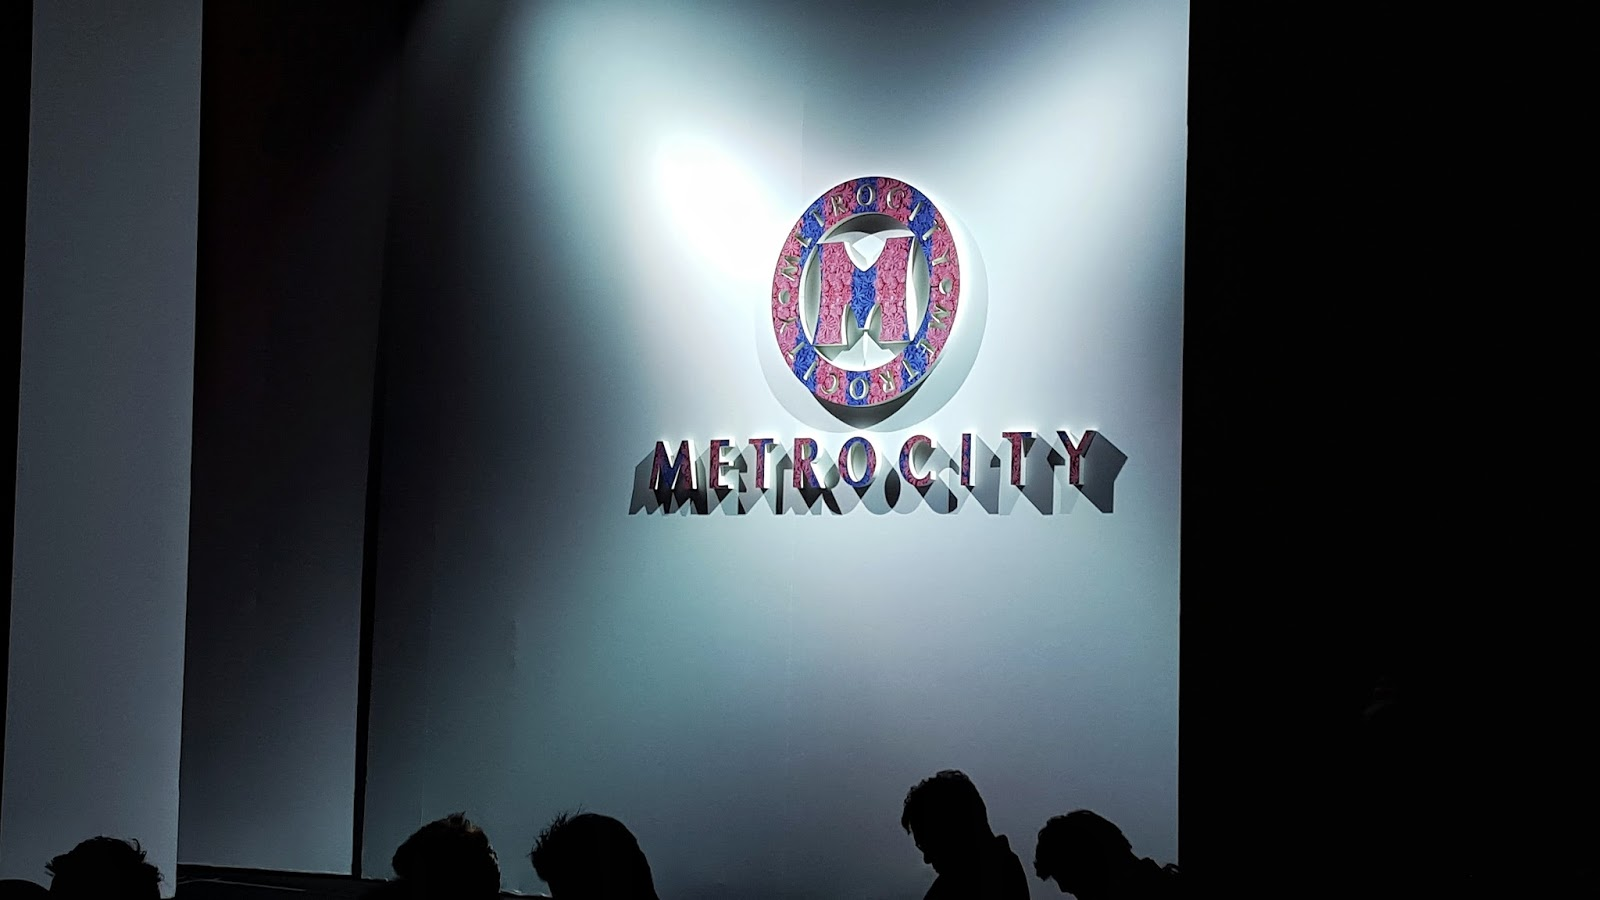 Seoul Fashion Week: Metrocity